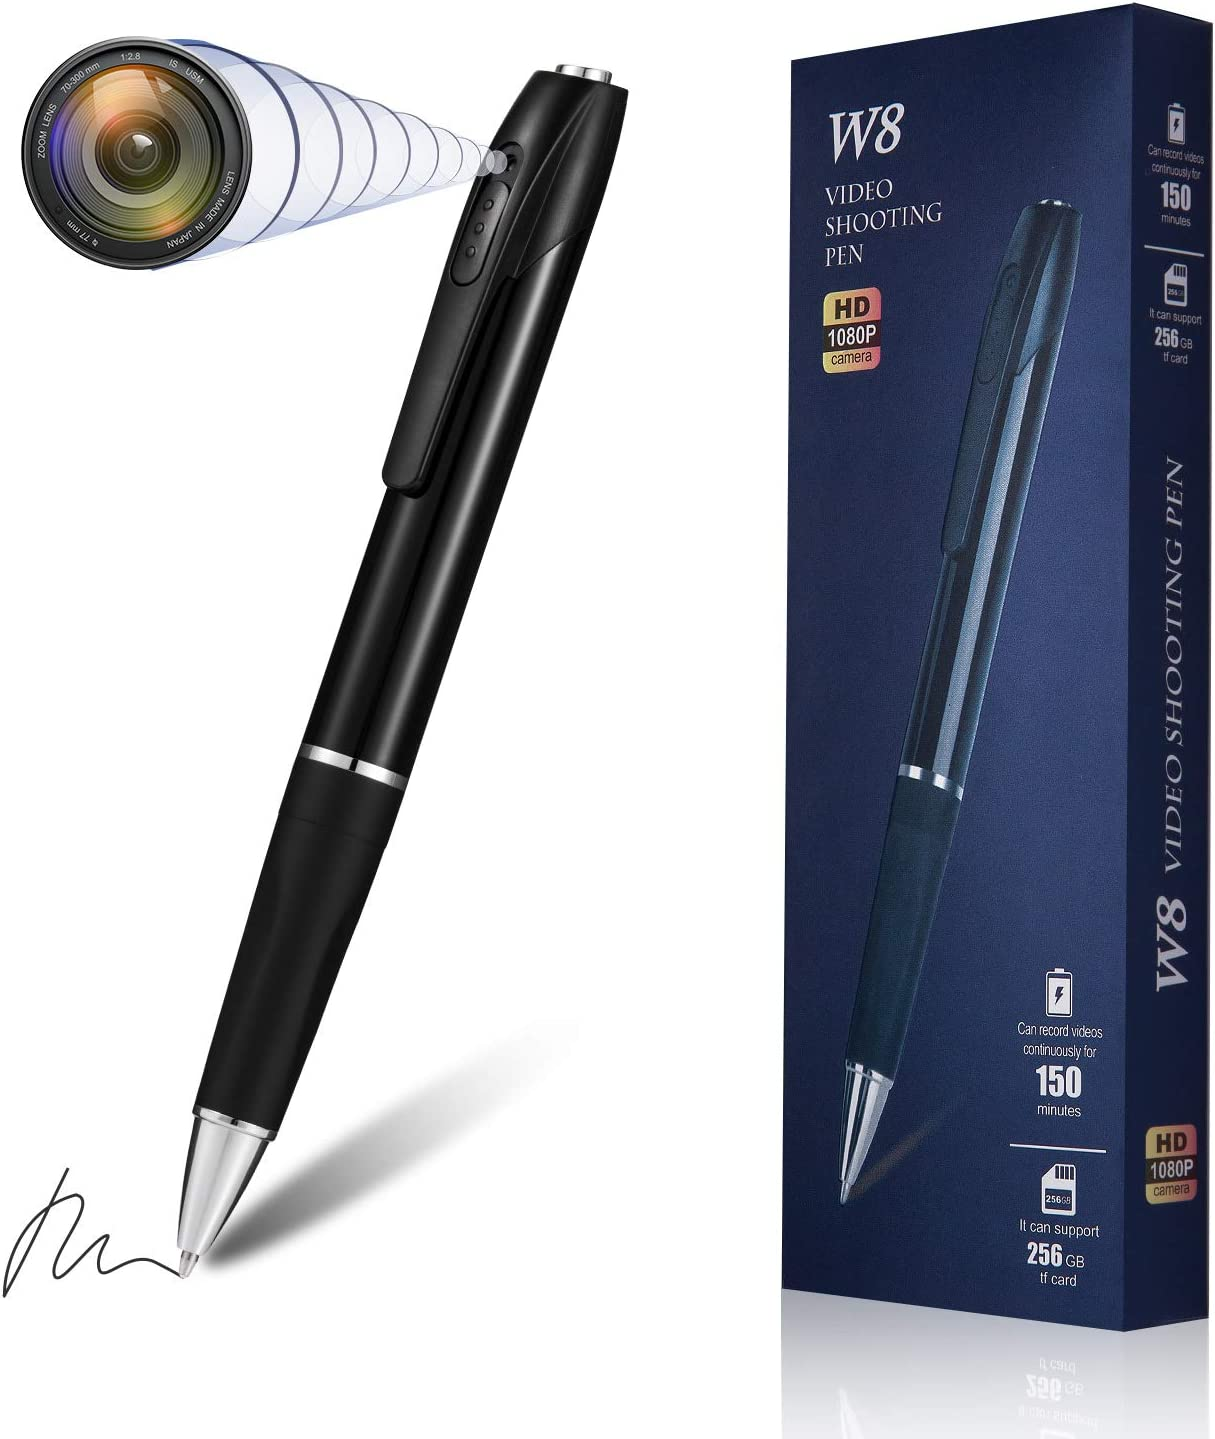 Hidden Spy Camera Pen Nanny Camera Pen HD 1080P Video Recorder, Spy Kit Body Camera Portable Pocket Mini Camera 150 Minutes Battery Life with 32GB SD Card for Business Conference and Security